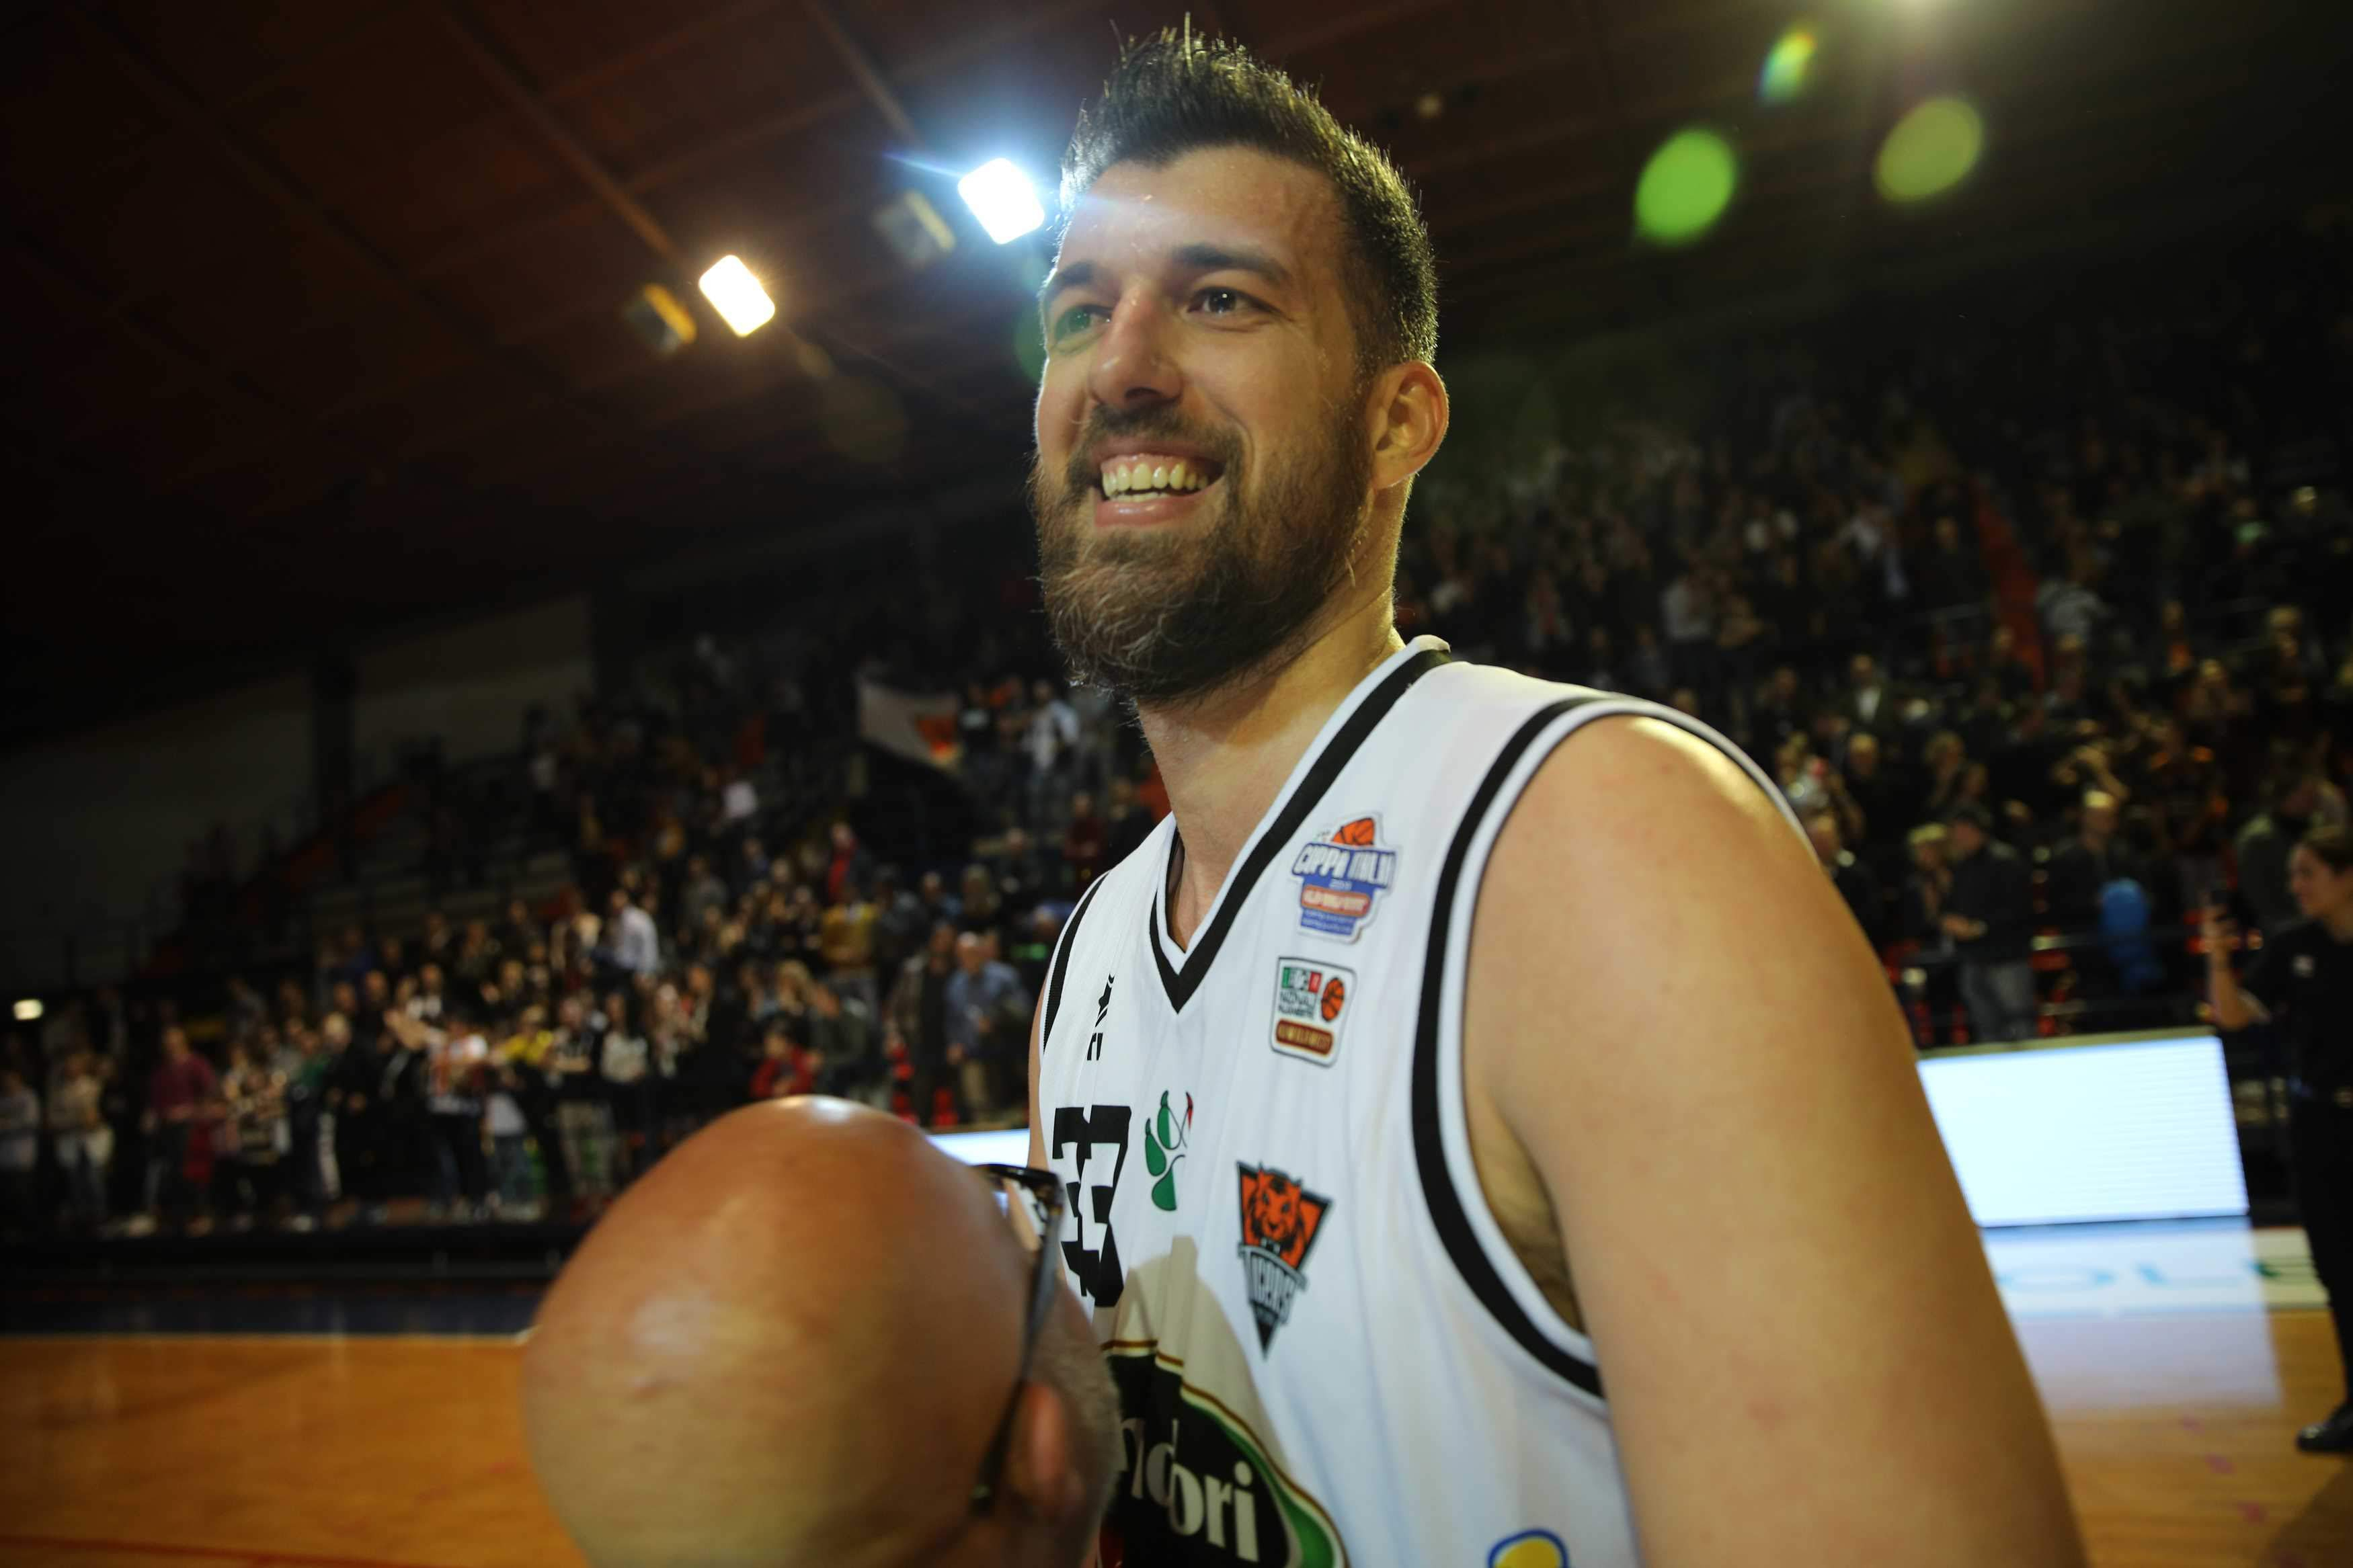 Basket B Girone C, l'Amadori perde Brkic per due giornate